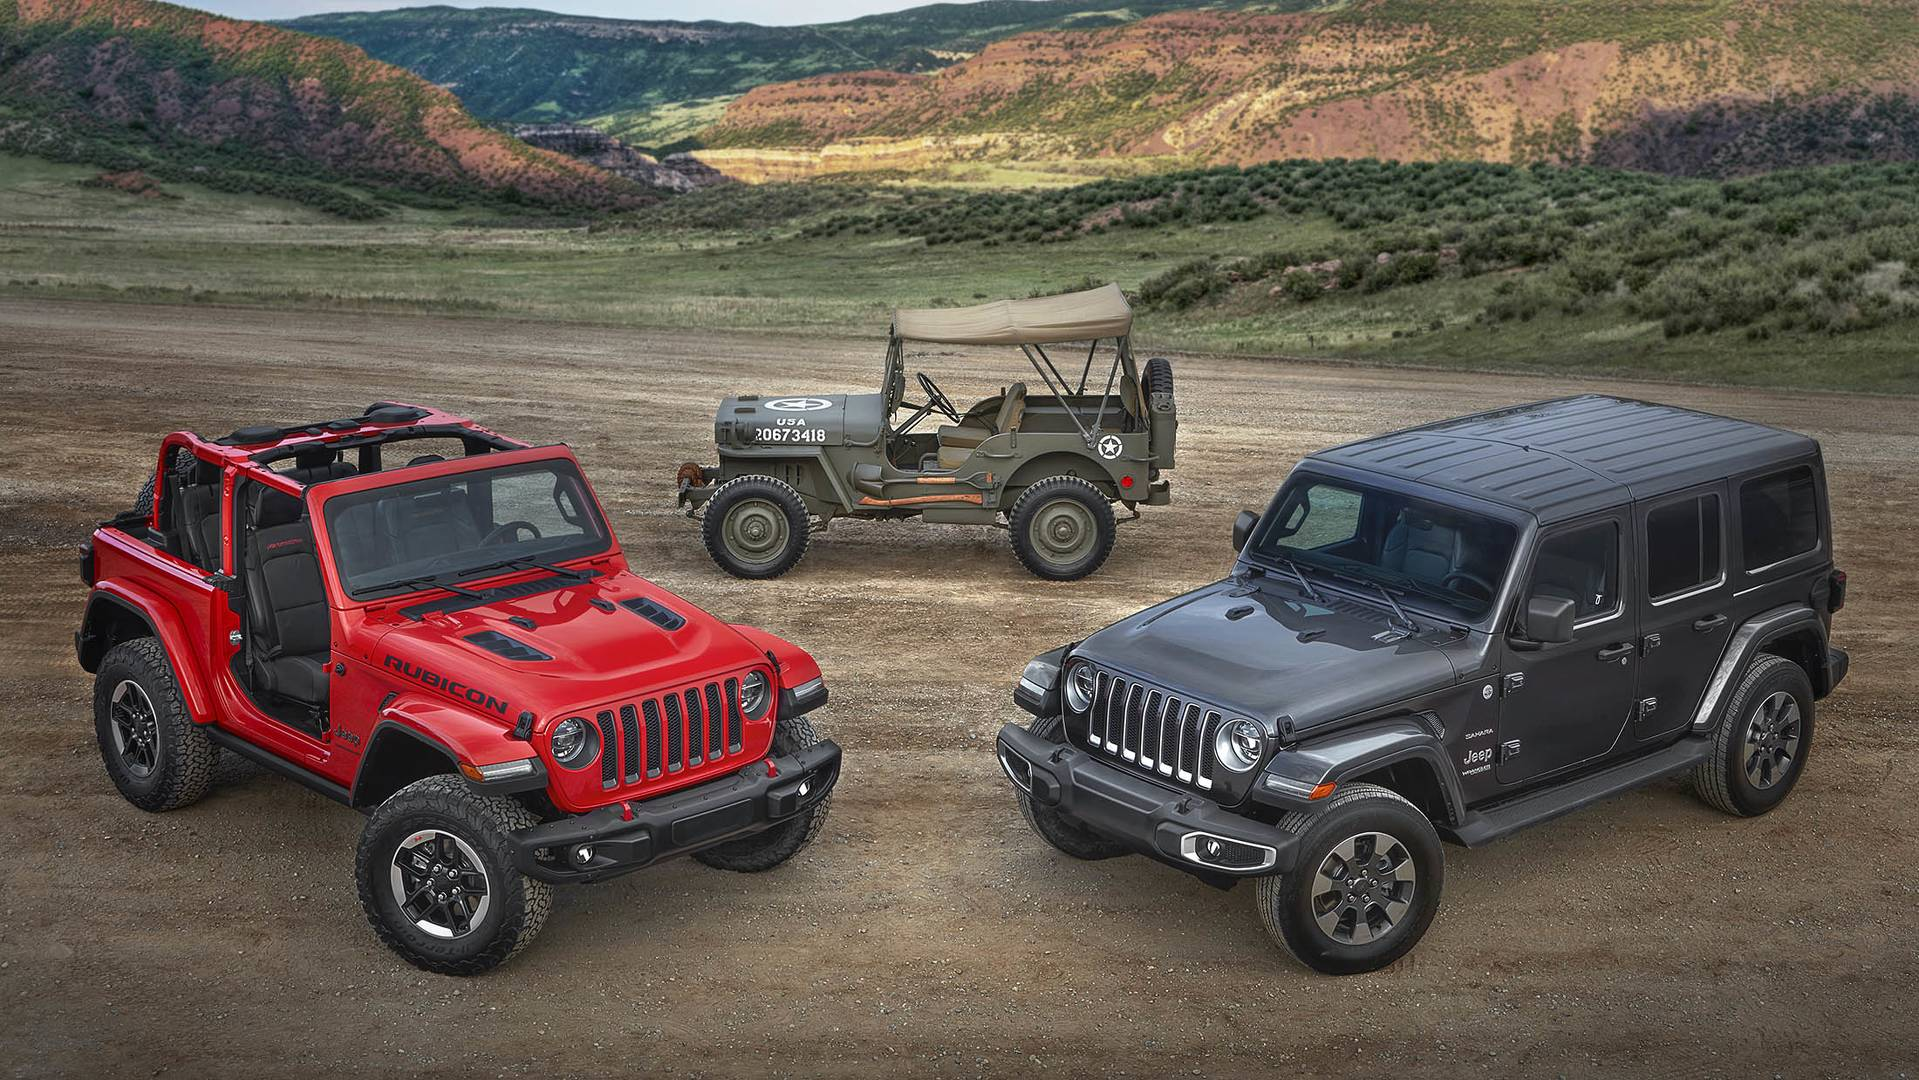 All-new 2018 Jeep® Wrangler Rubicon, 1944 Jeep Willys-Overland MB and all-new 2018 Jeep Wrangler Sahara